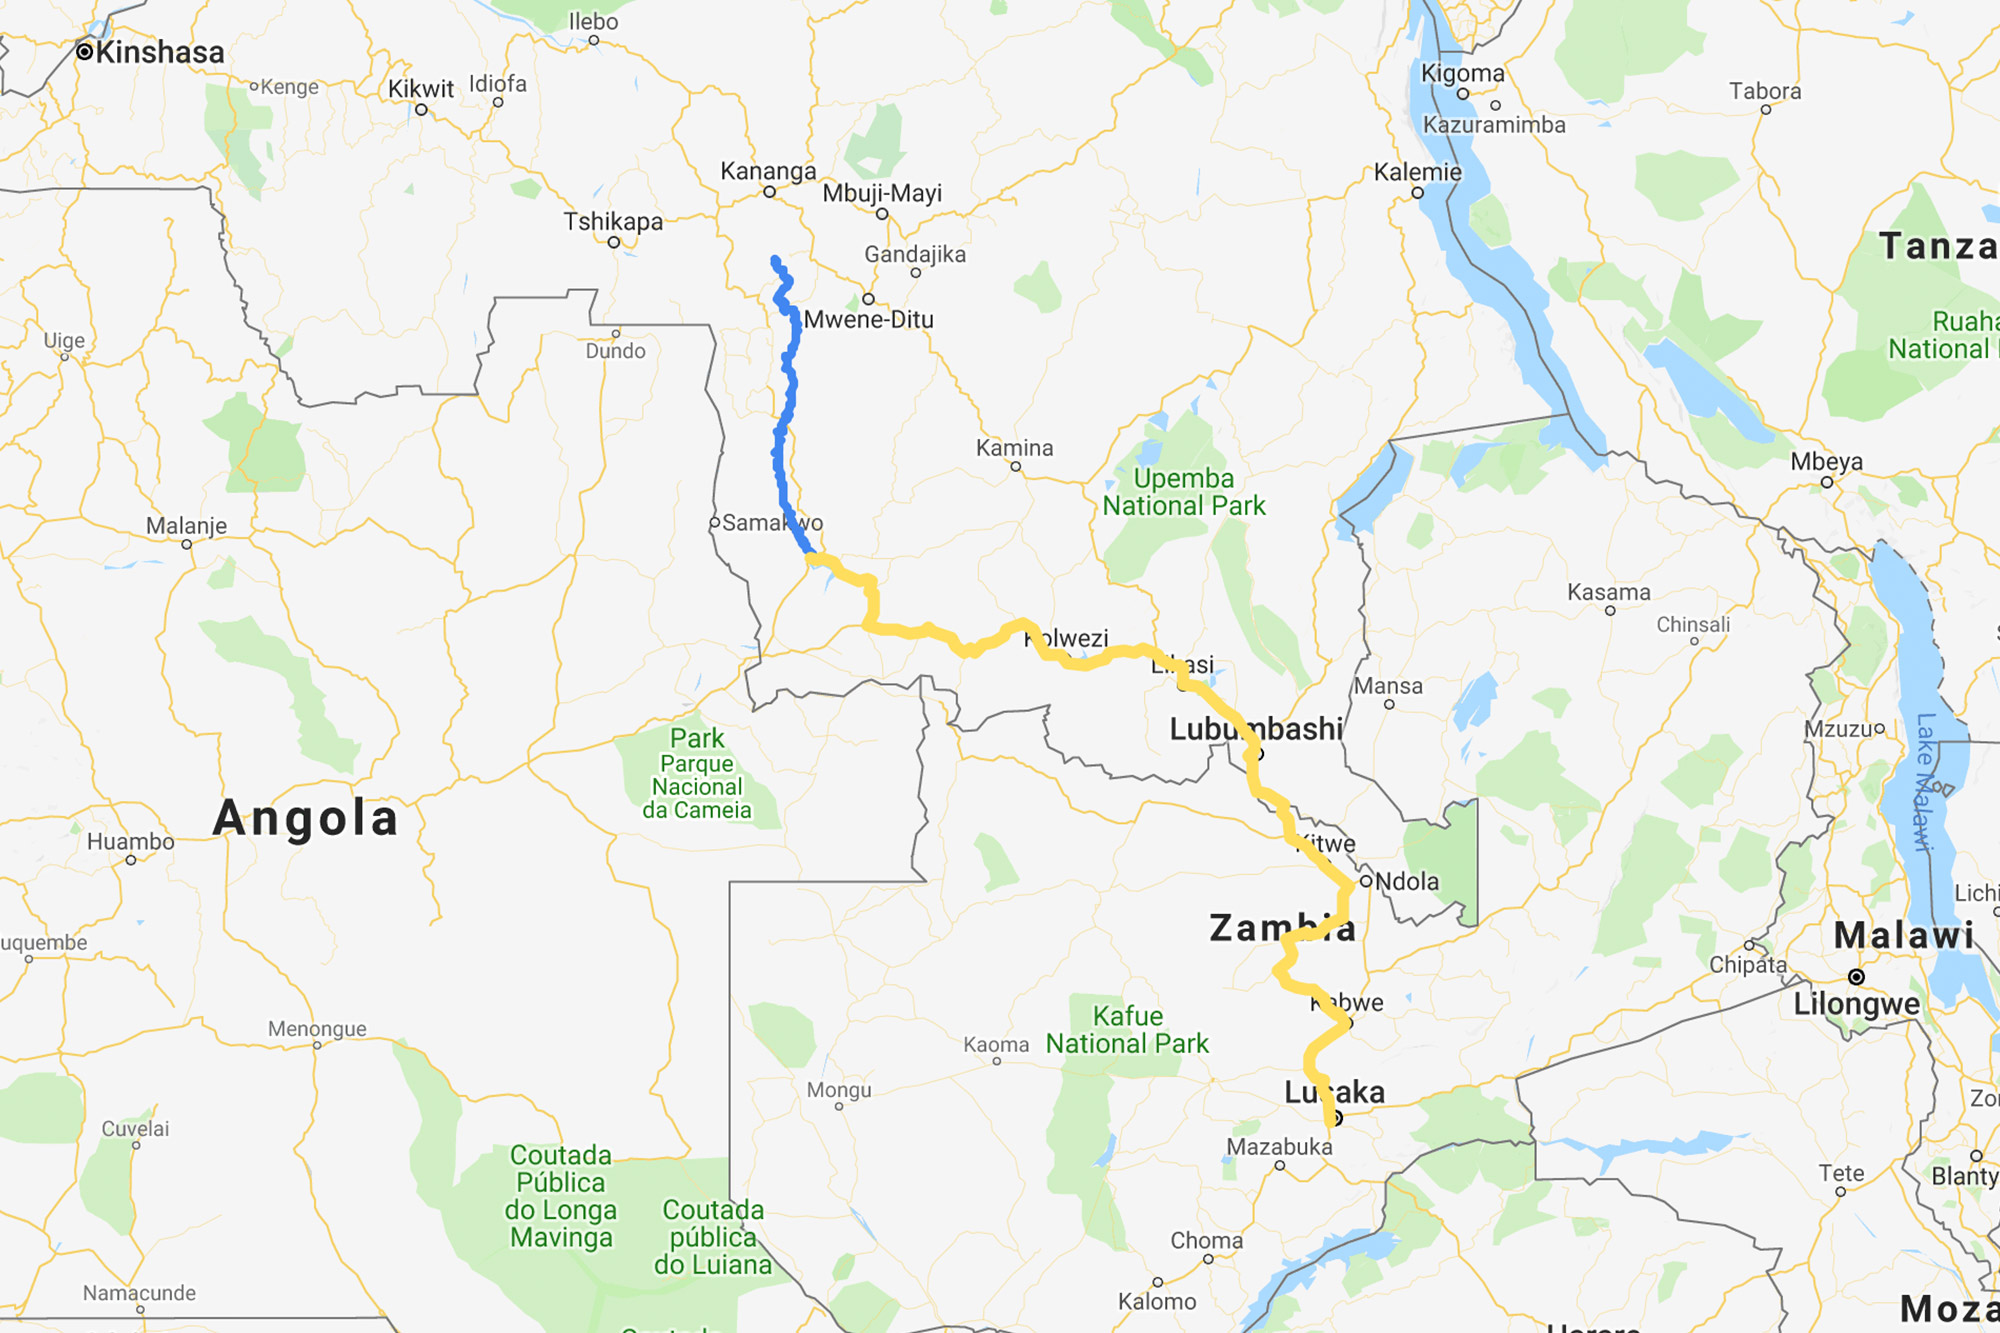 Blue: Our journey along the River Lulua by piroque. Yellow: Our route from Lusaka to Sandoa by bicycle